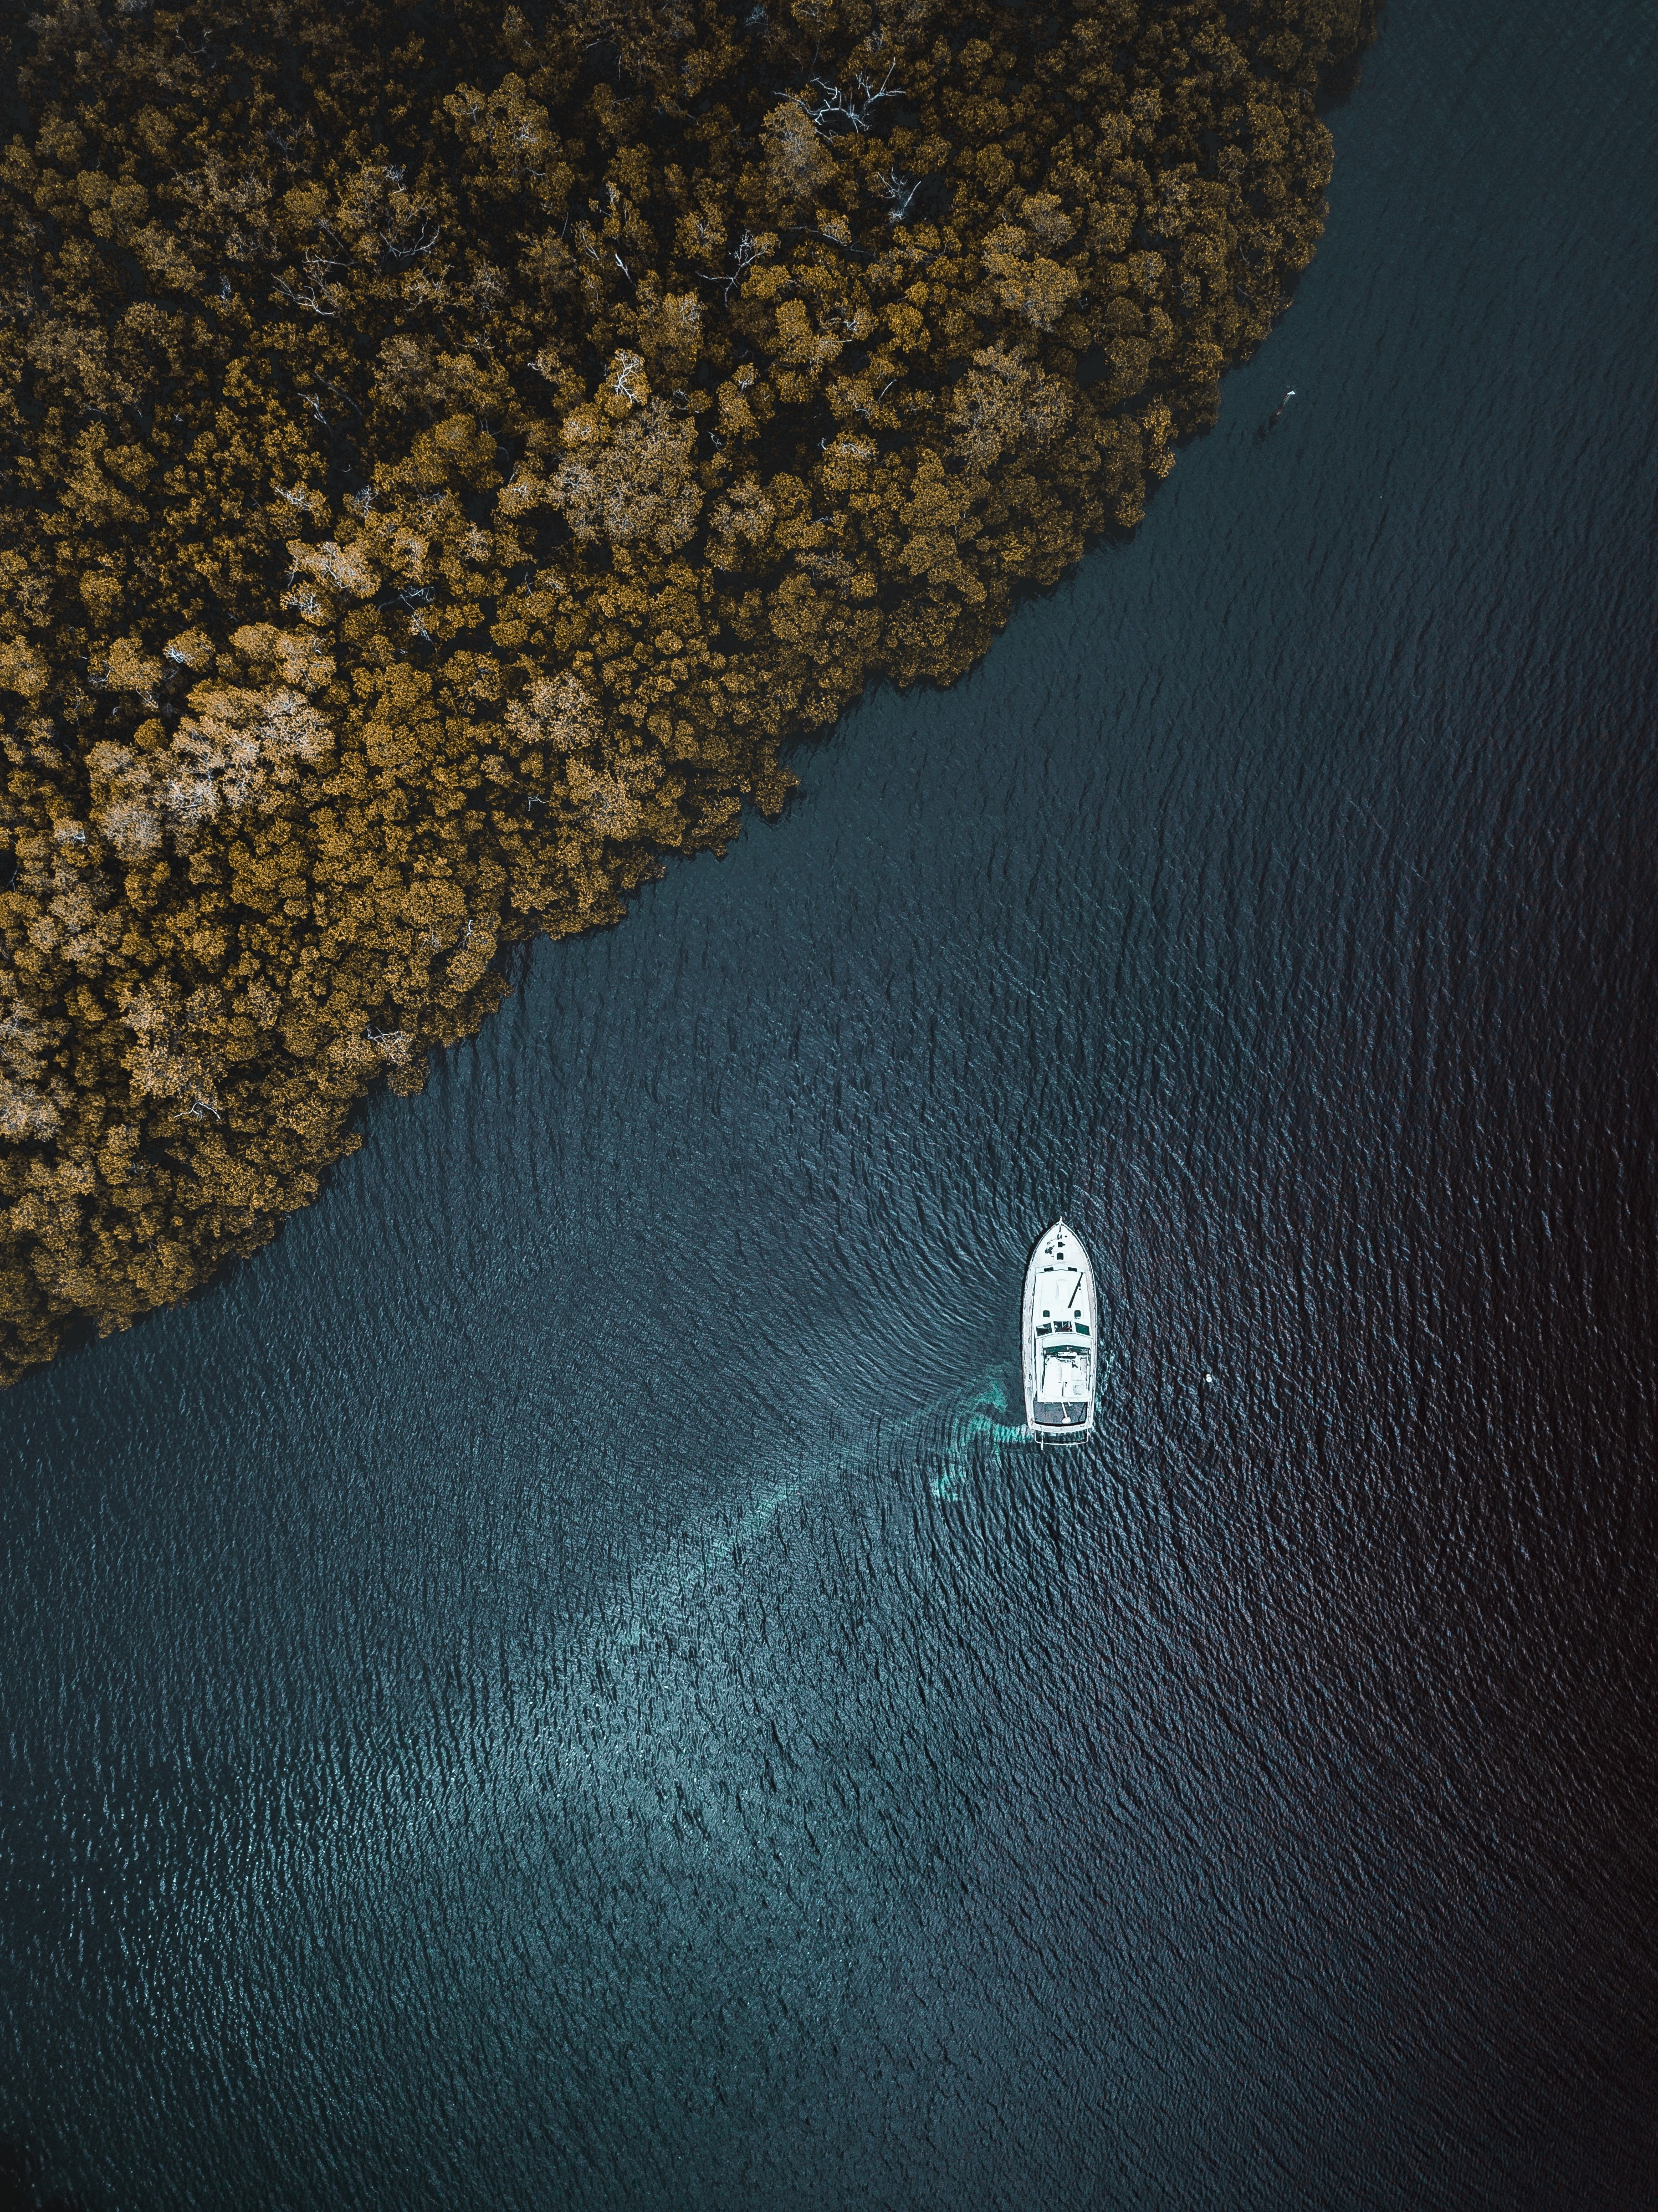 bird's-eye view of boat on body of water